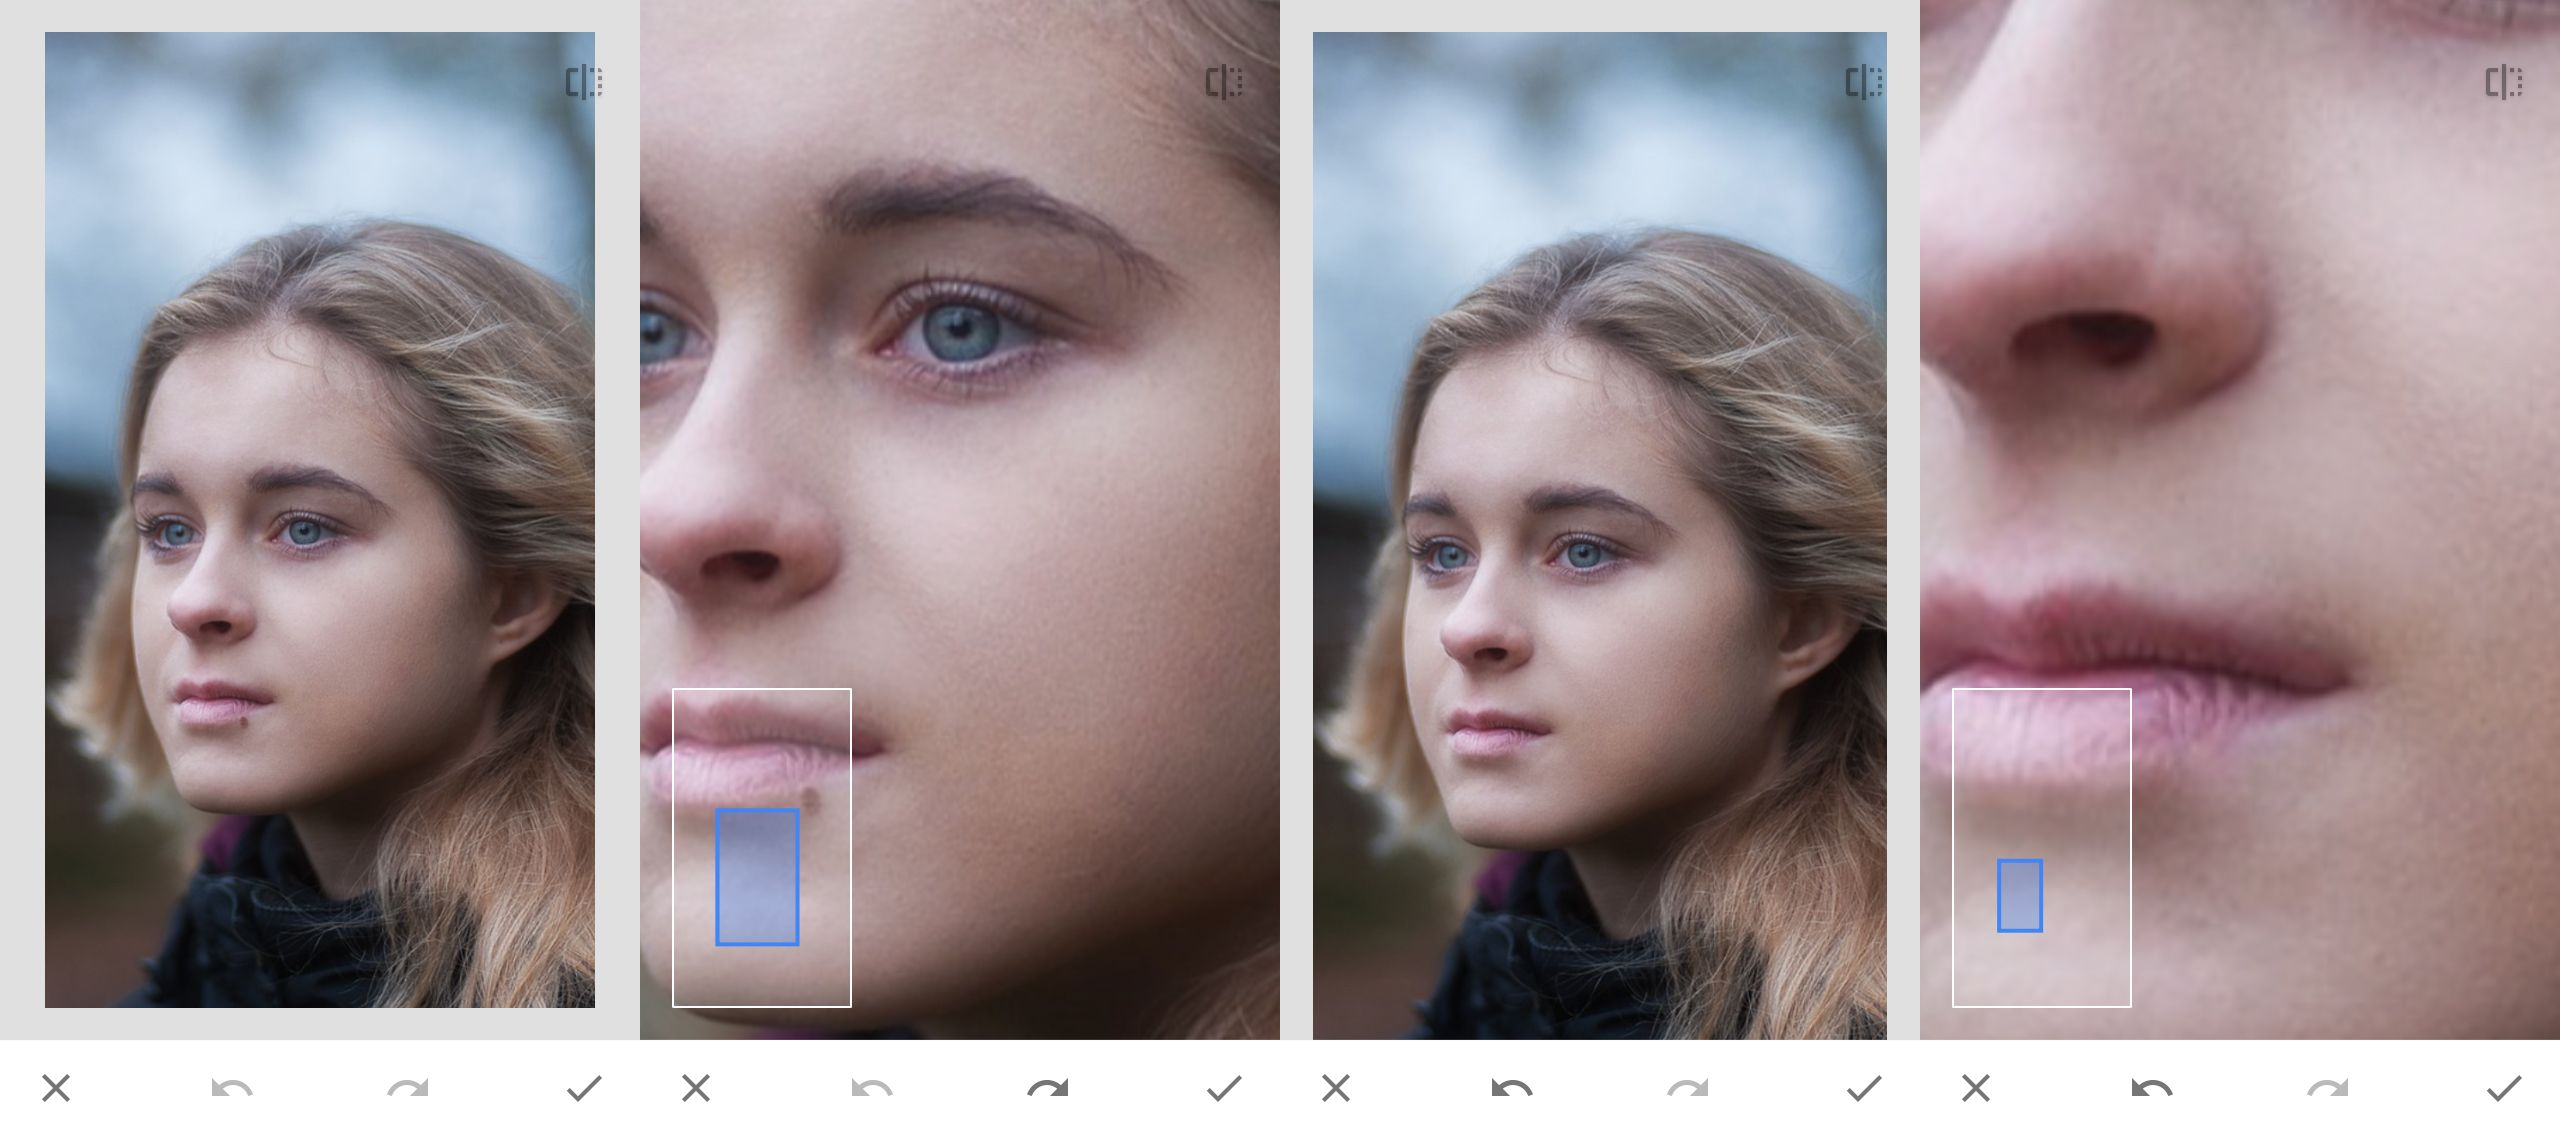 Snapseed is an allpurpose photo editor app developed by